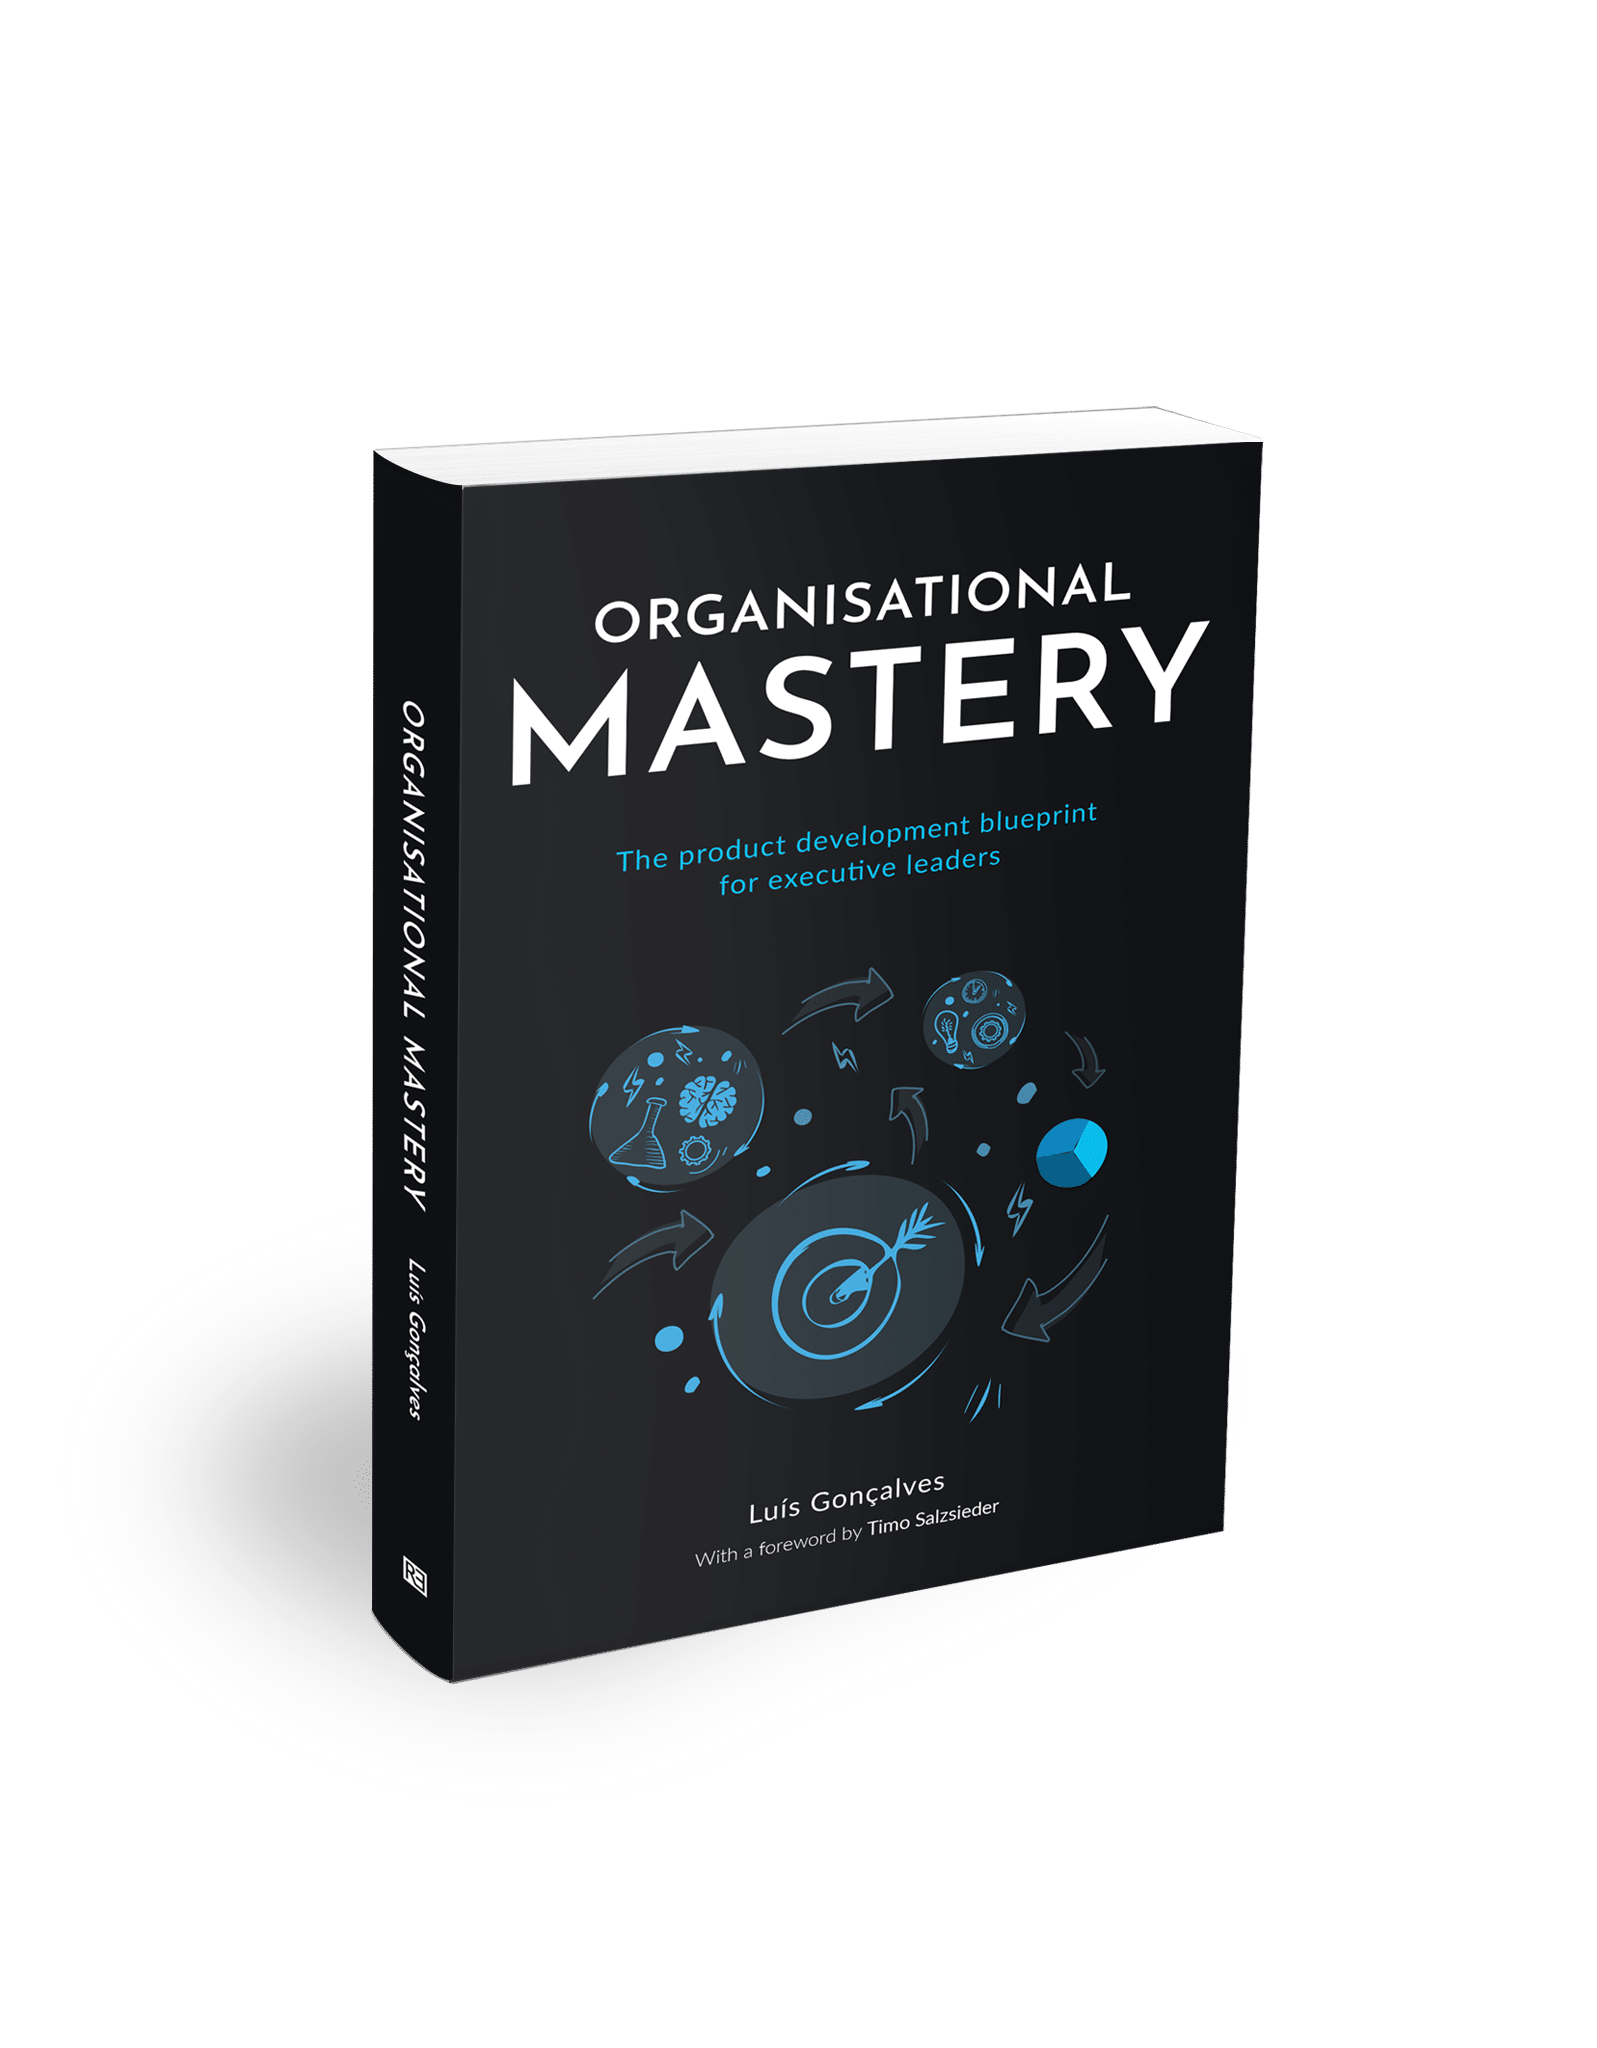 ORGANISATIONAL MASTERY BOOK